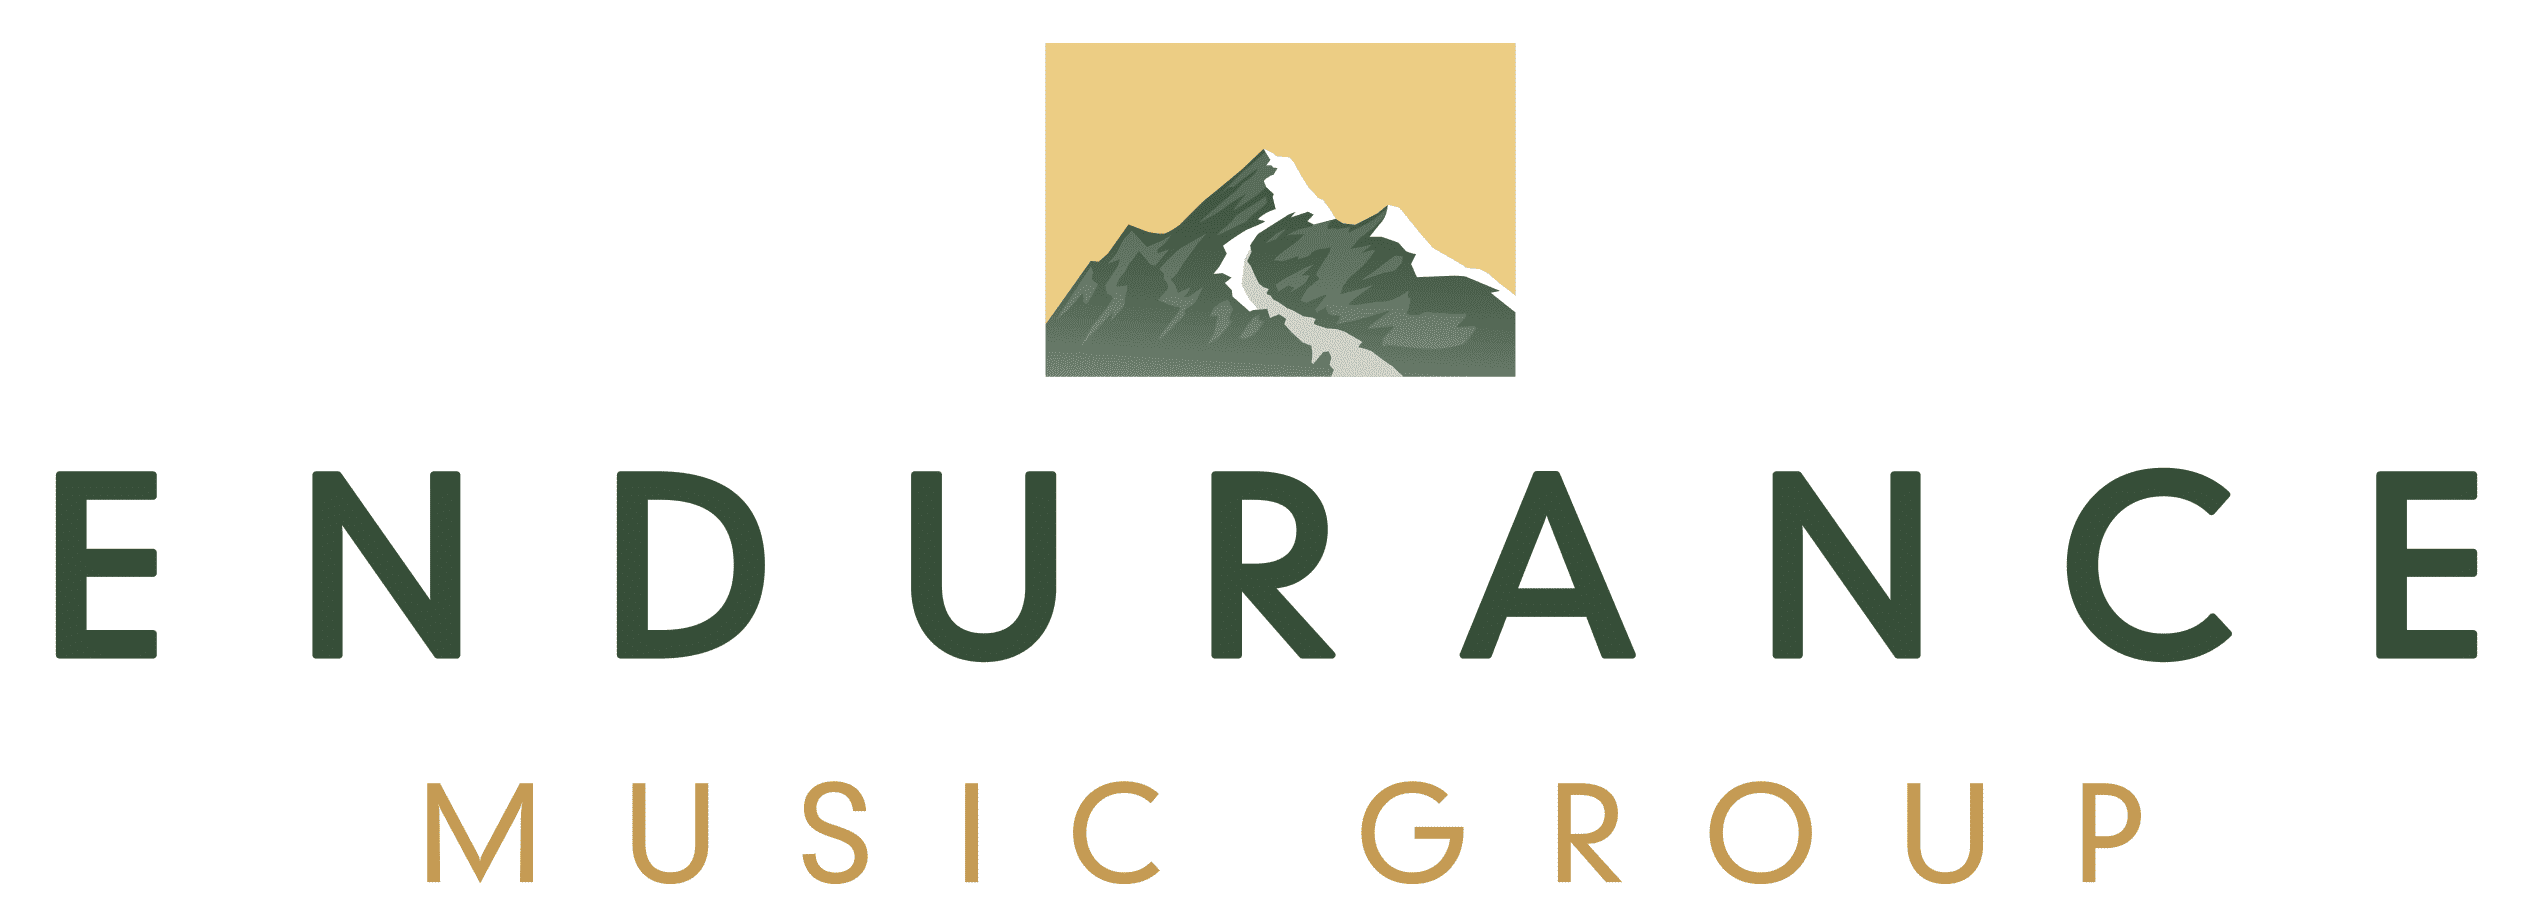 Endurance Music Group